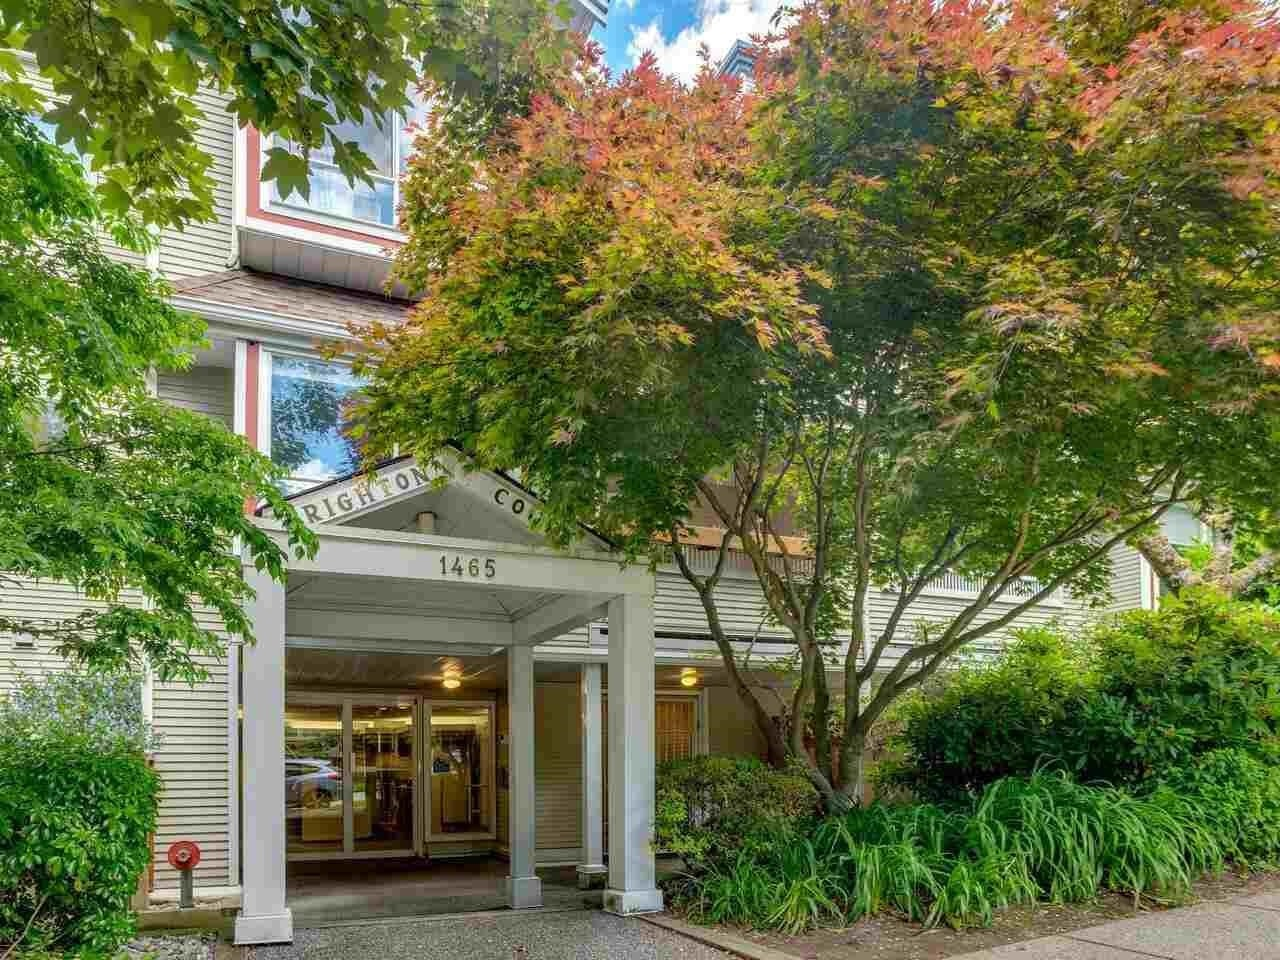 207 1465 COMOX STREET - West End VW Apartment/Condo for sale, 1 Bedroom (R2594193) - #1